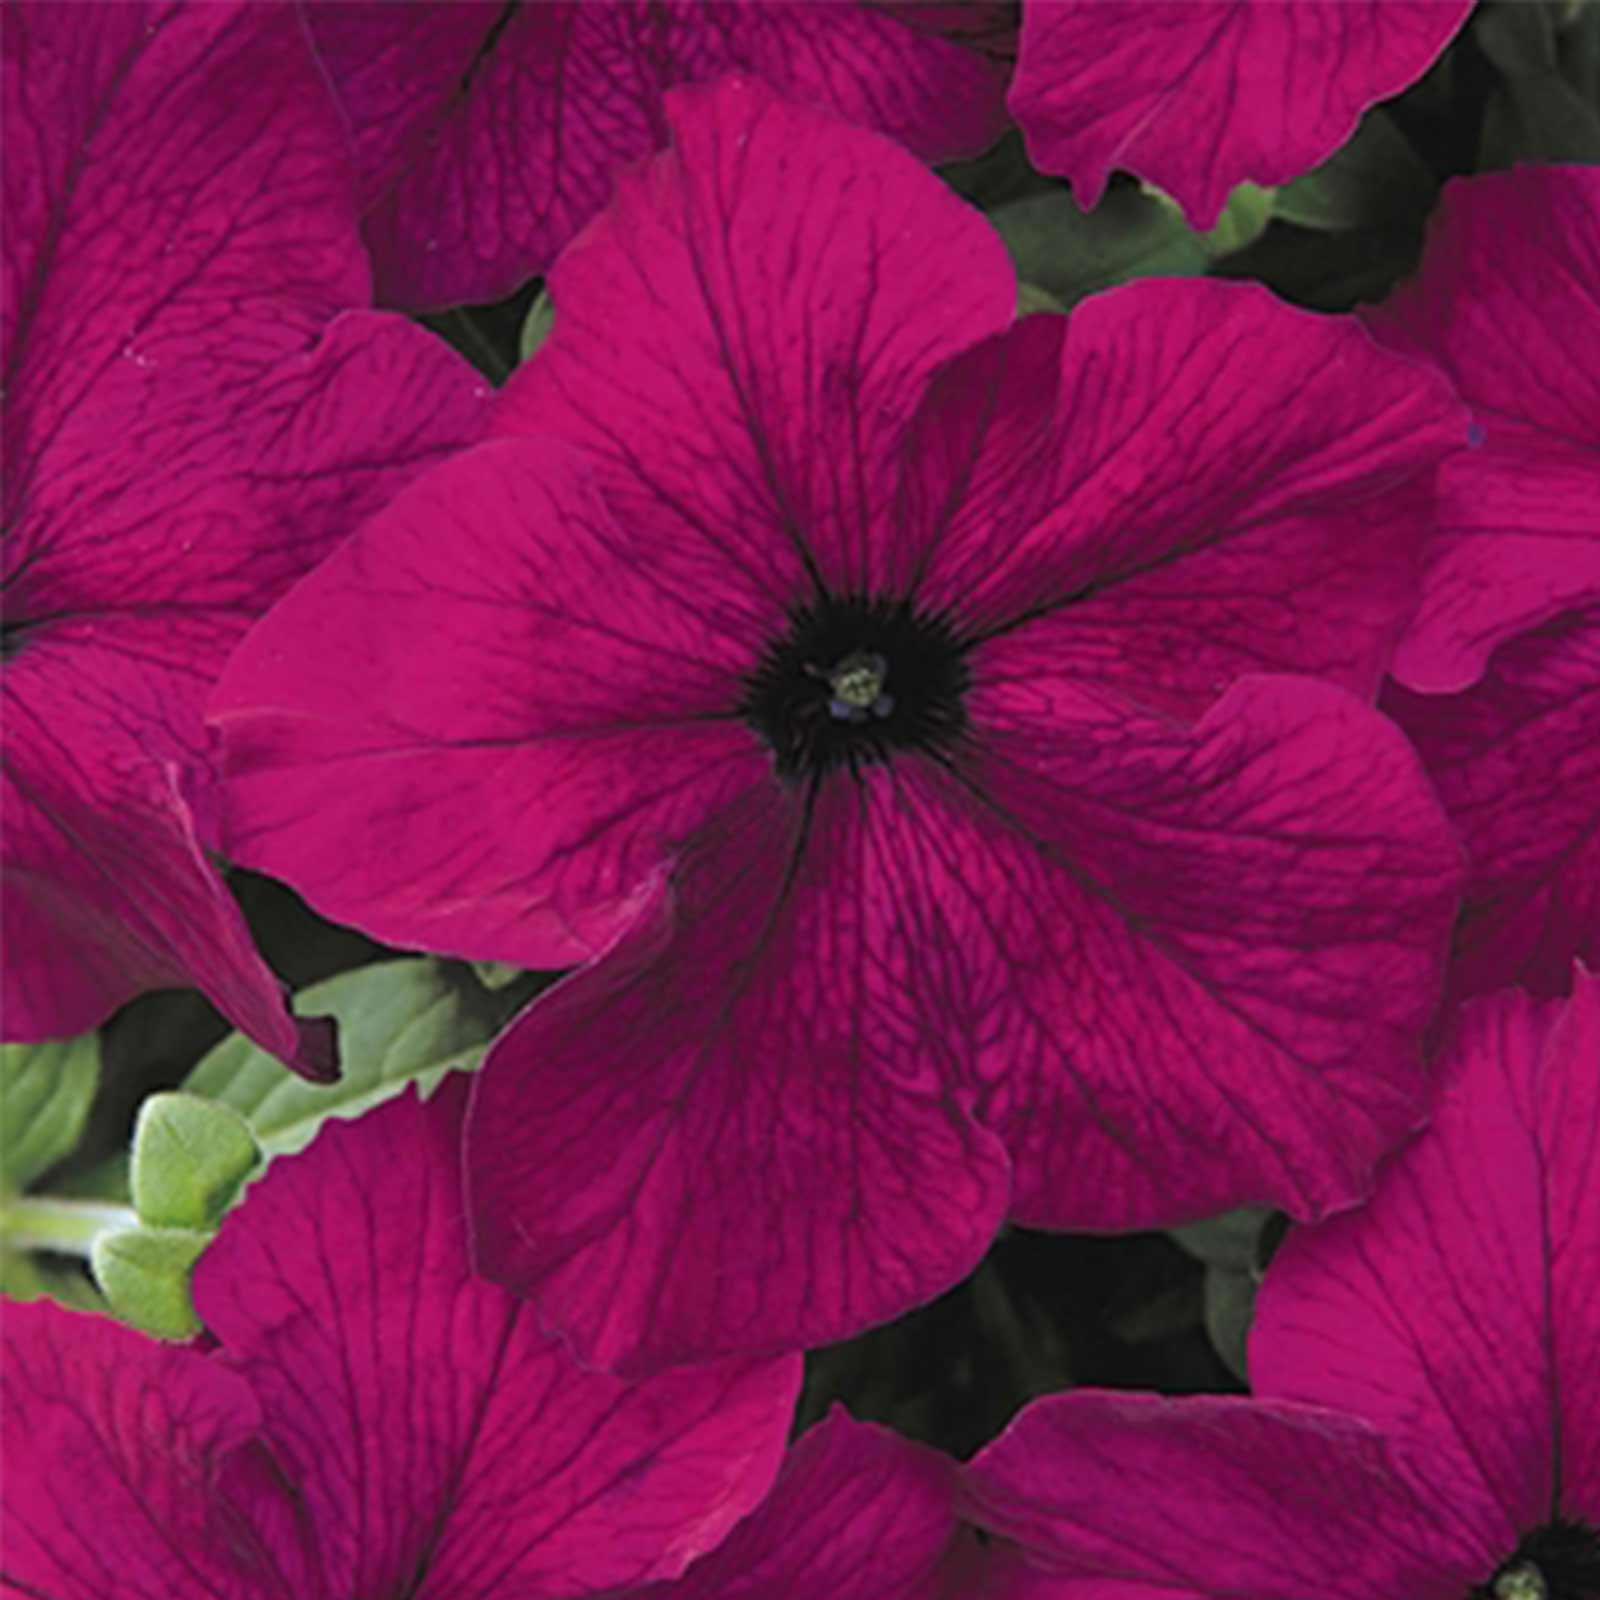 Petunia - Dream Series Flower Garden Seed - 1000 Pelleted Seeds - Midnight Color Flowers - Annual Blooms - Single Grandiflora Petunias